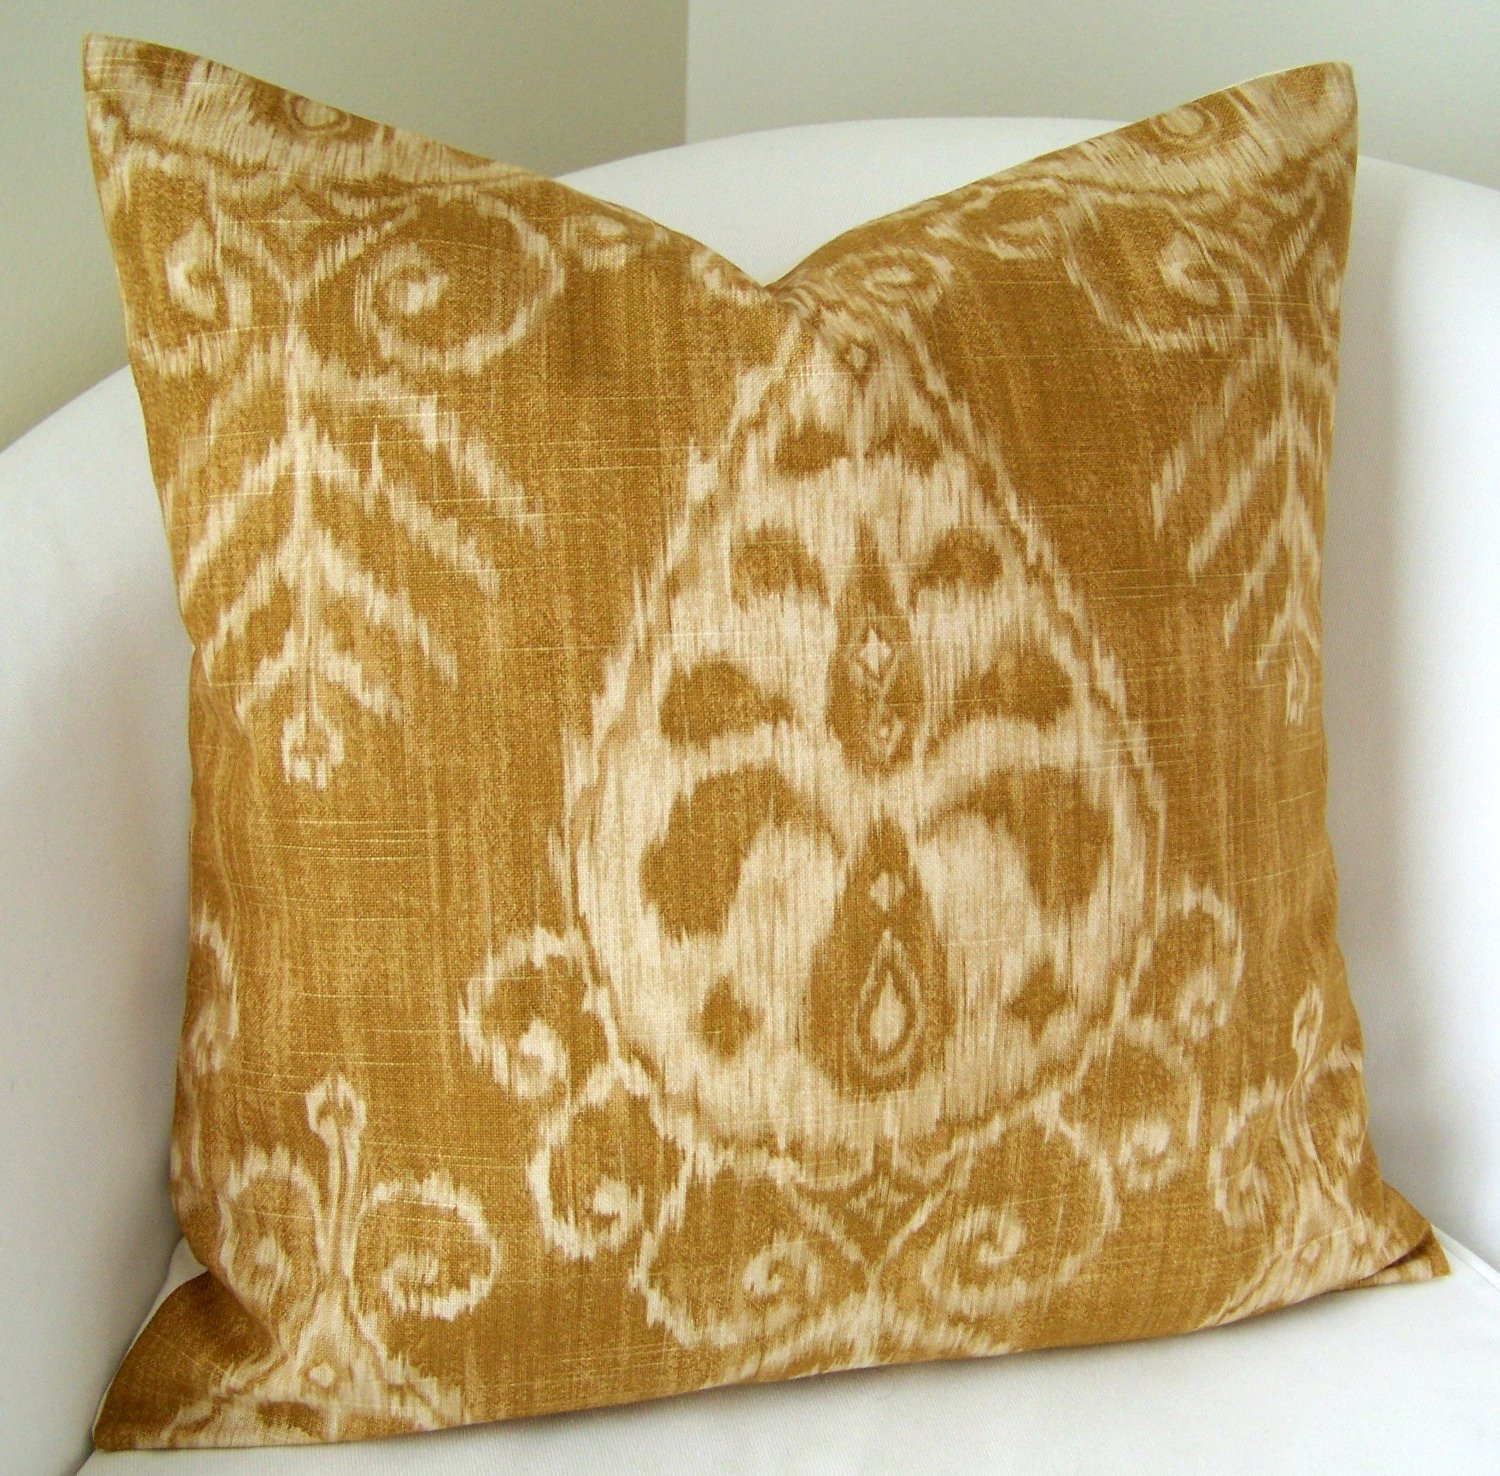 Lovely Decorative Throw Pillow Cover Gold Ikat Pillow 20×20 Inch Patterned Throw Of Amazing 40 Photos Patterned Throw